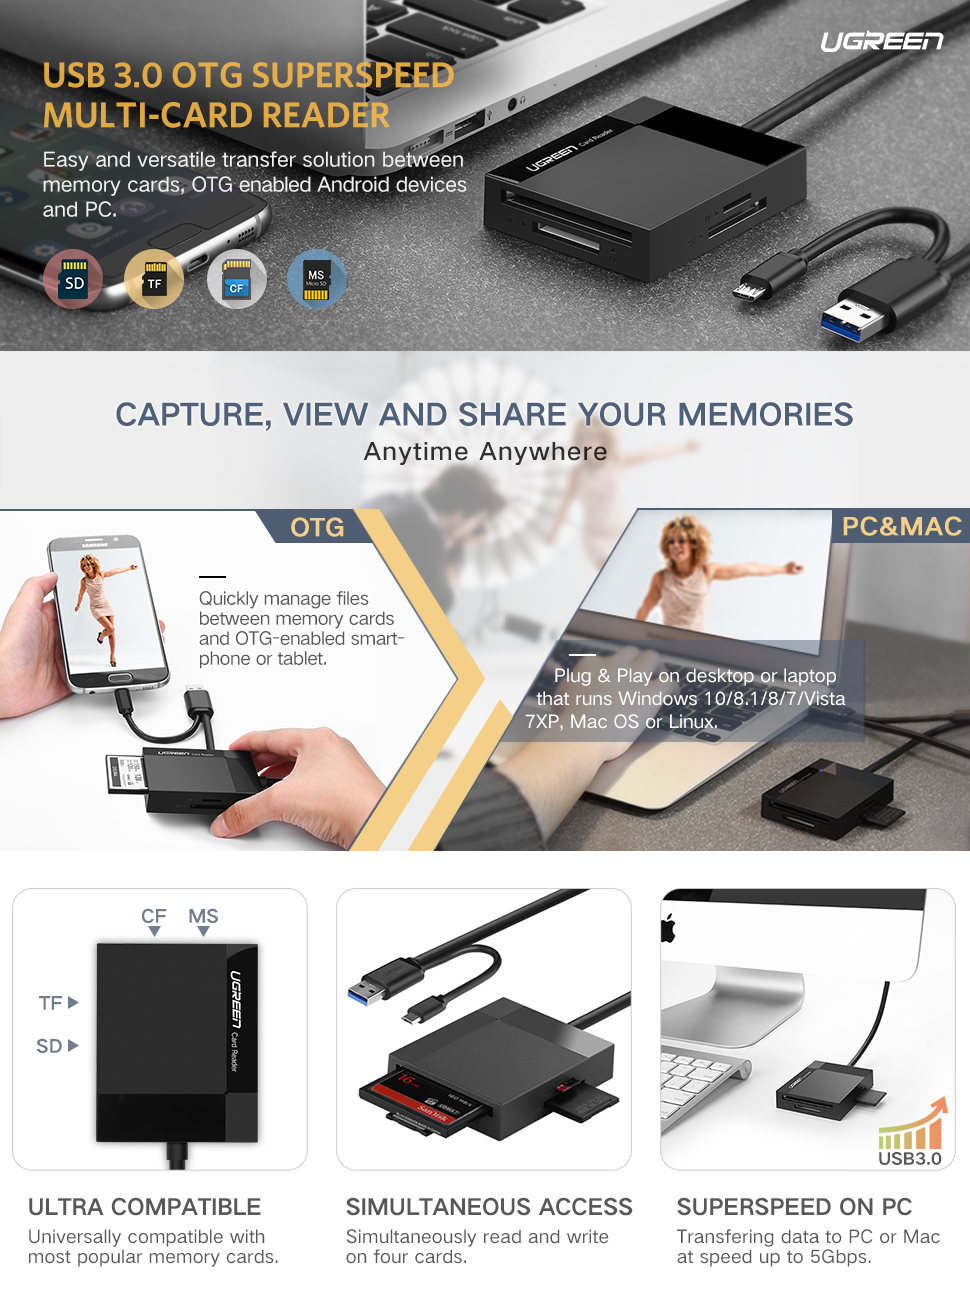 PRO USB 3.0 Card Reader Works for Samsung Galaxy J5 Adapter to Directly Read at 5Gbps Your MicroSDHC MicroSDXC Cards